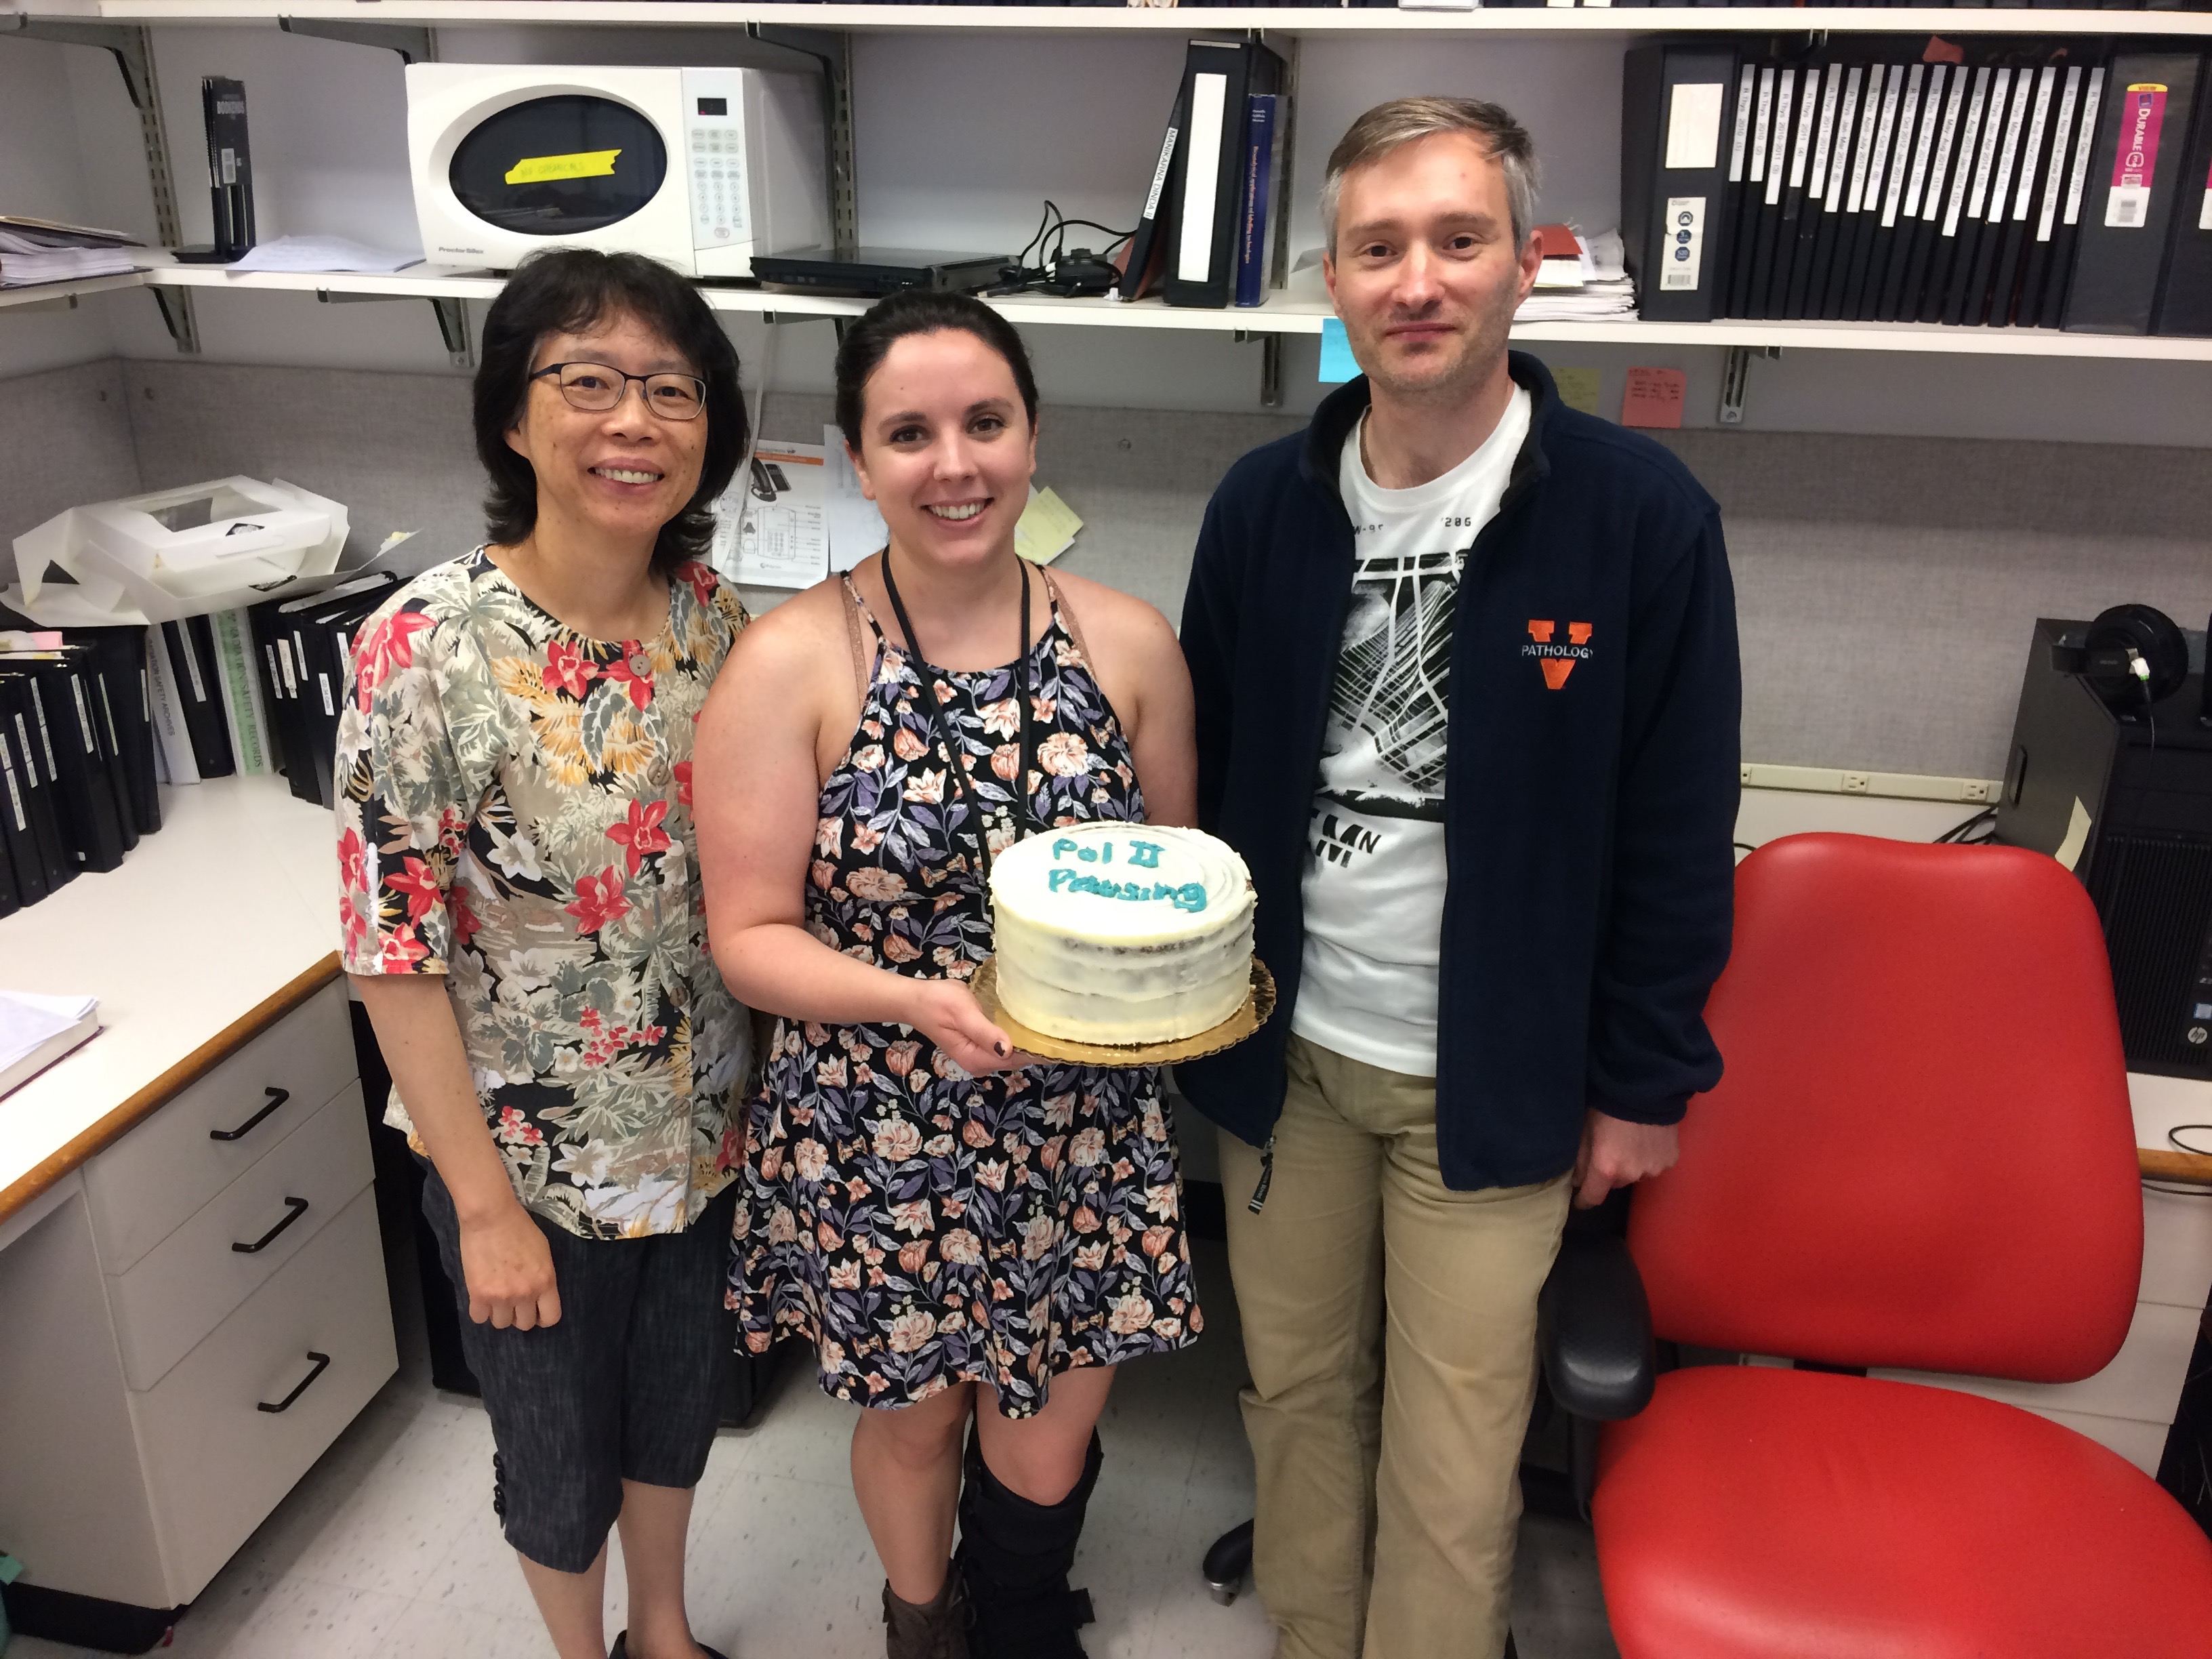 Image of Dr. Yuh-Hwa Wang, Naomi Atkin, and Karol Szlachta with a cake celebrating the pausing paper